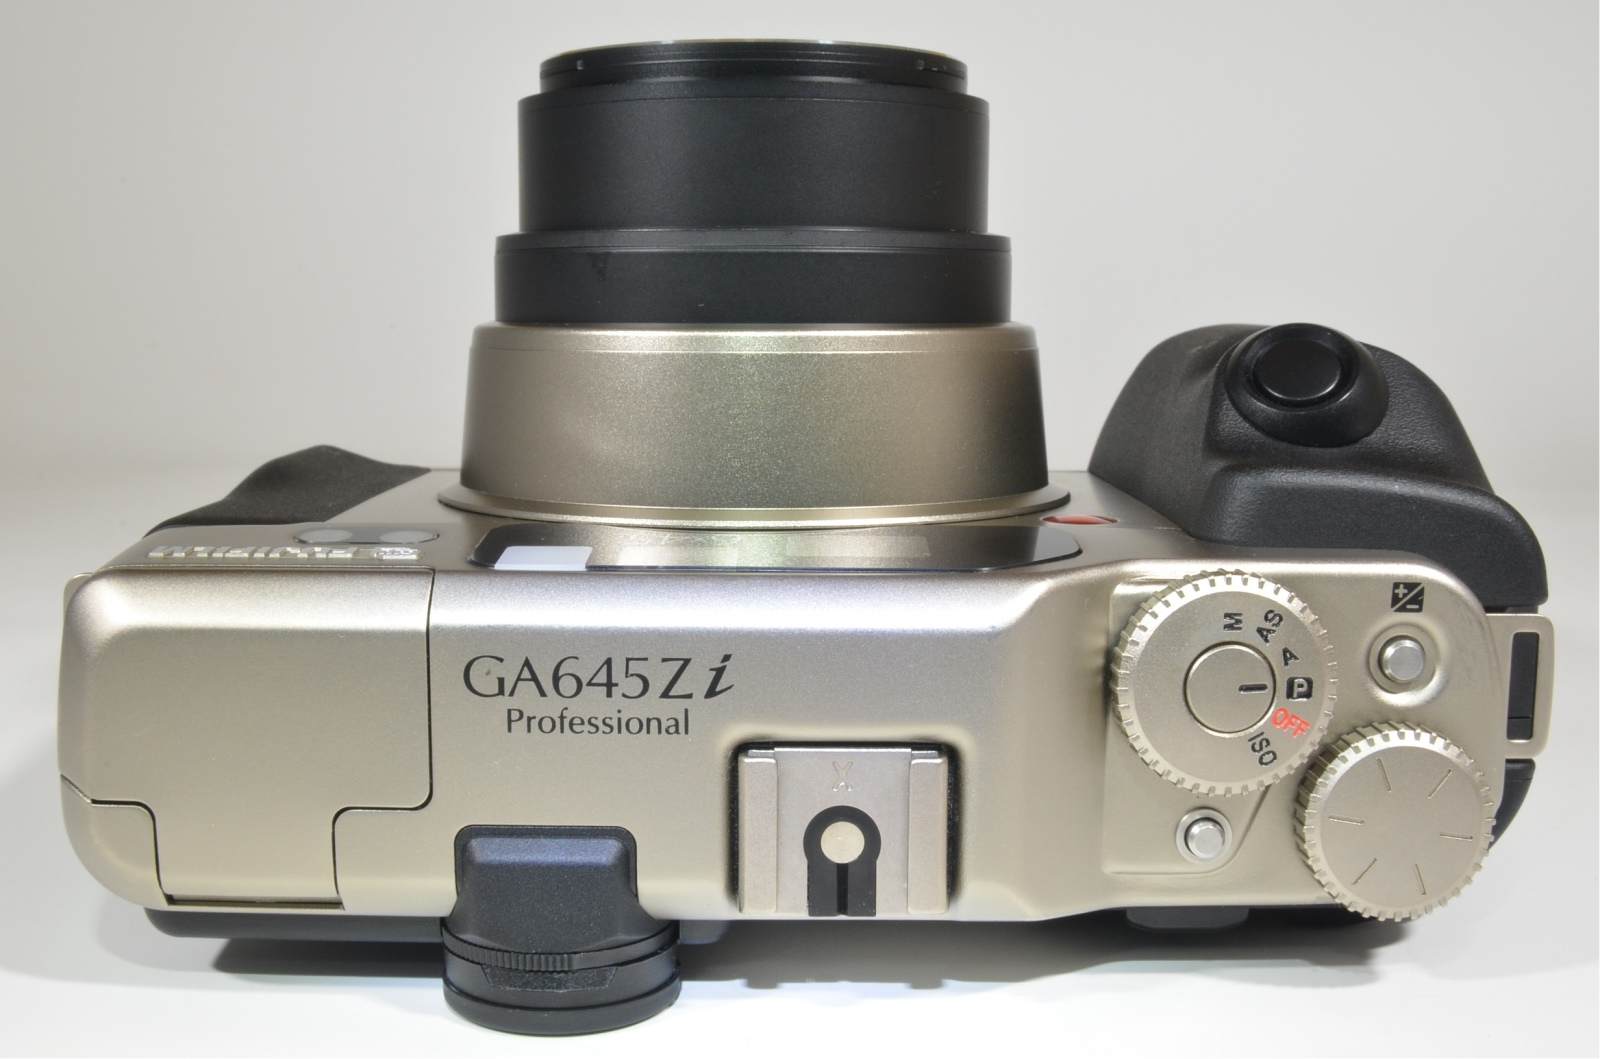 fujifilm ga645zi zoom 55-90mm f4.5-6.9